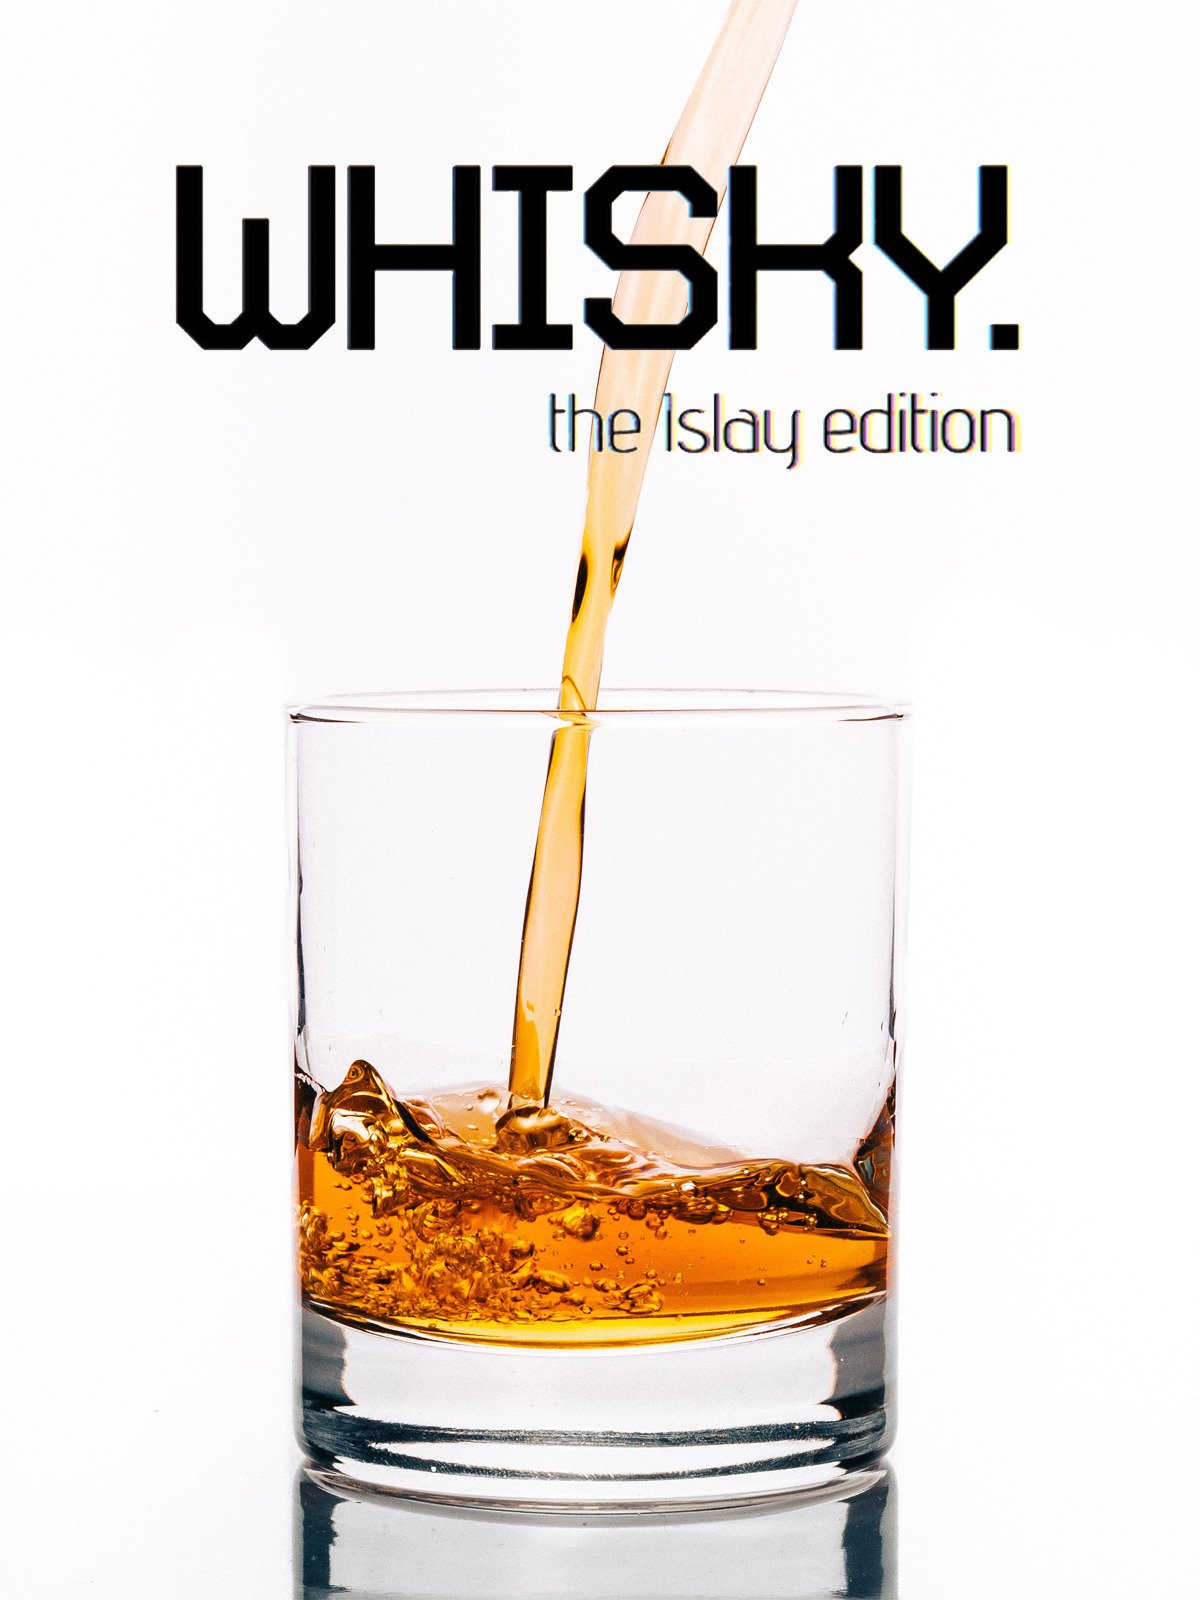 Amazon.com: Watch Whisky - The Islay Edition | Prime Video